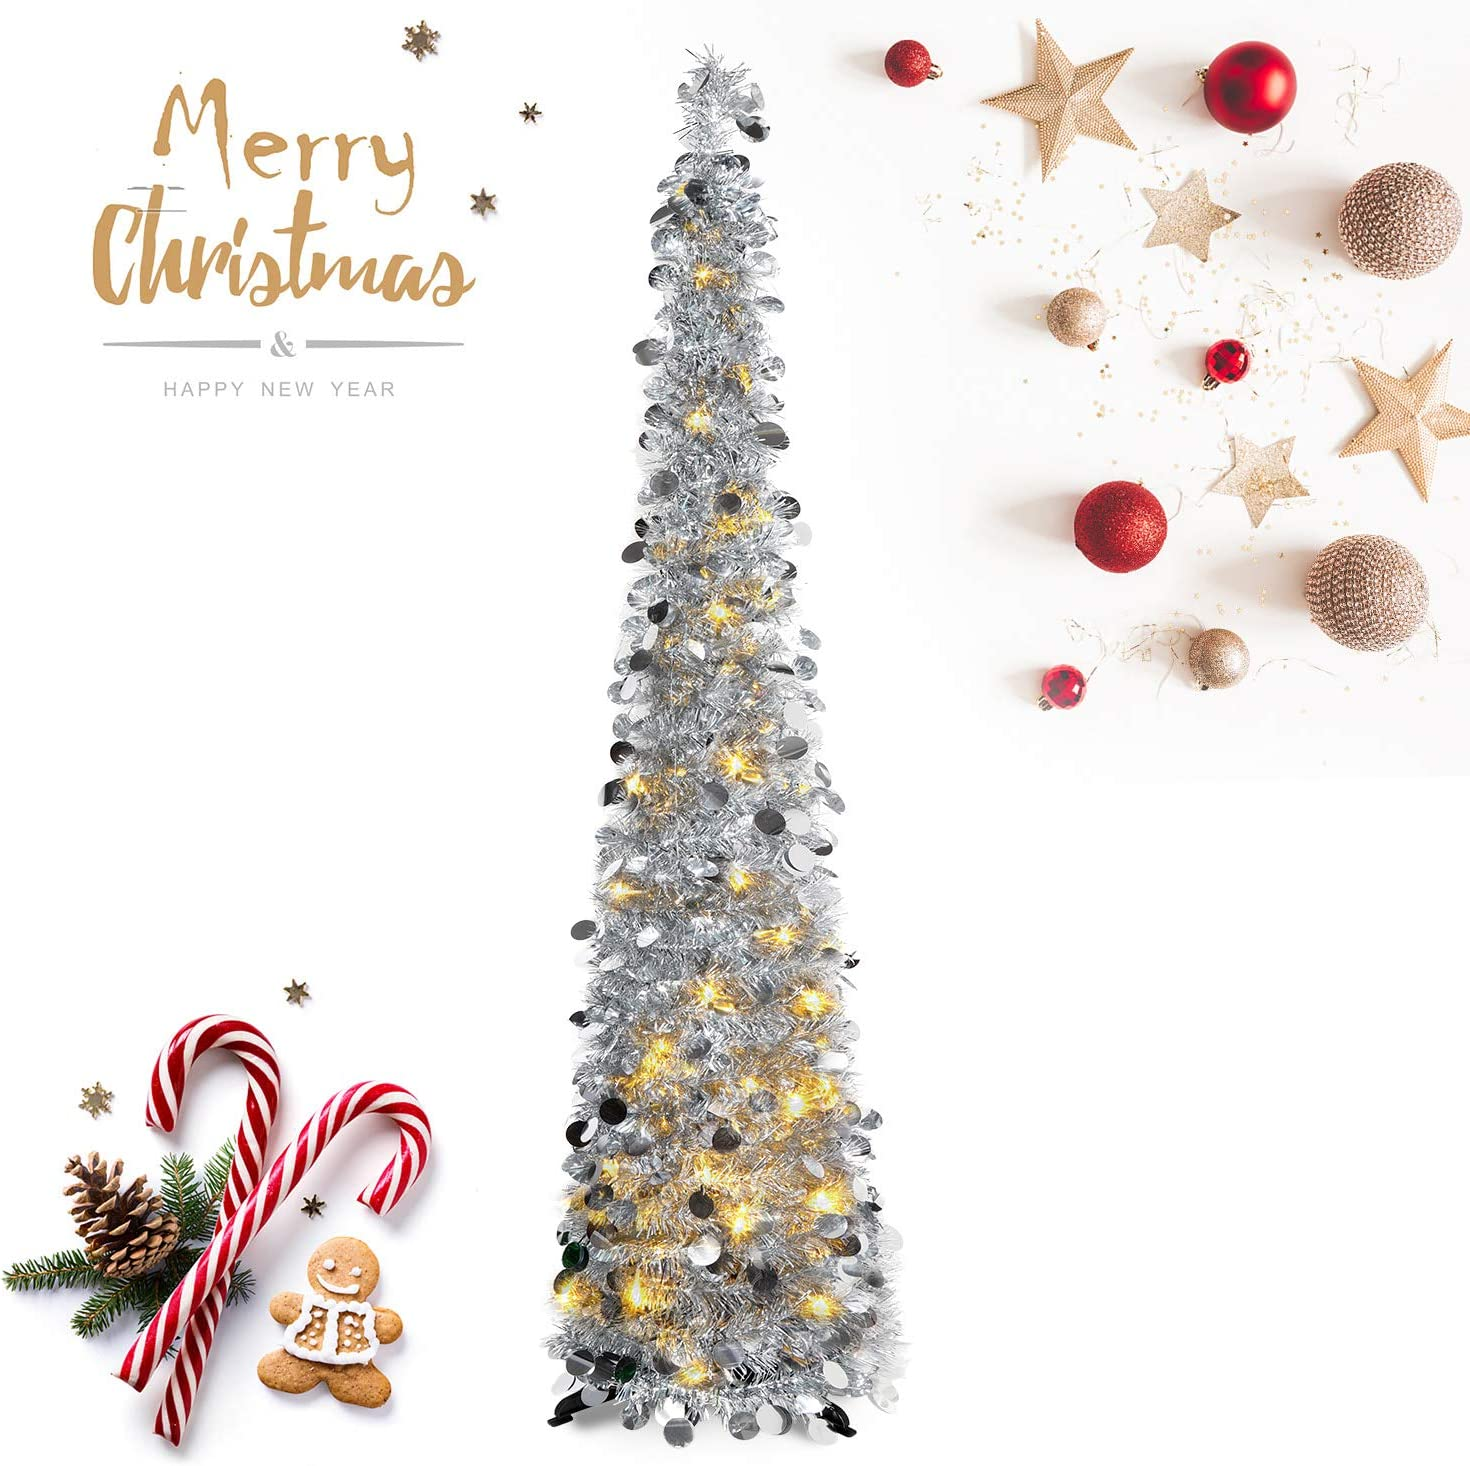 HMASYO Pop Up Tinsel Christmas Tree with Lights - 5 Foot Sequin Artificial Christmas Pencil Trees Xmas Decorations for Home Office Fireplace Party, Collapsible and Easy to Assemble (5 Foot - Silver)